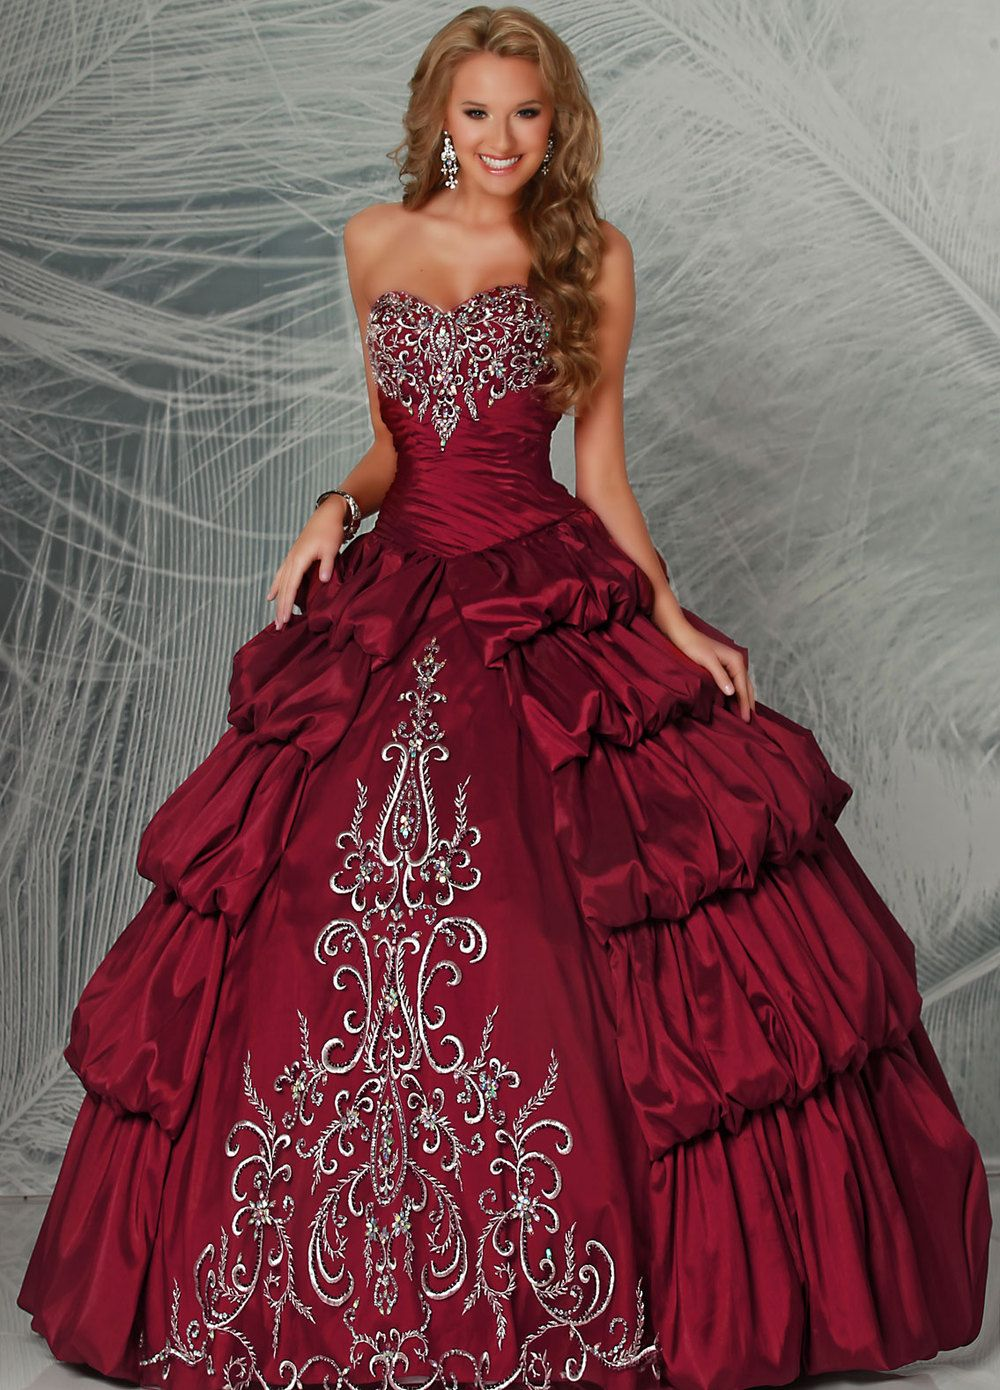 04631069ffb Aliexpress.com   Buy New Ball Gown Long Embroidery Sweetheart 2013 Quinceanera  Dress Red from Reliable Quinceanera Dress Red suppliers on Berydress.